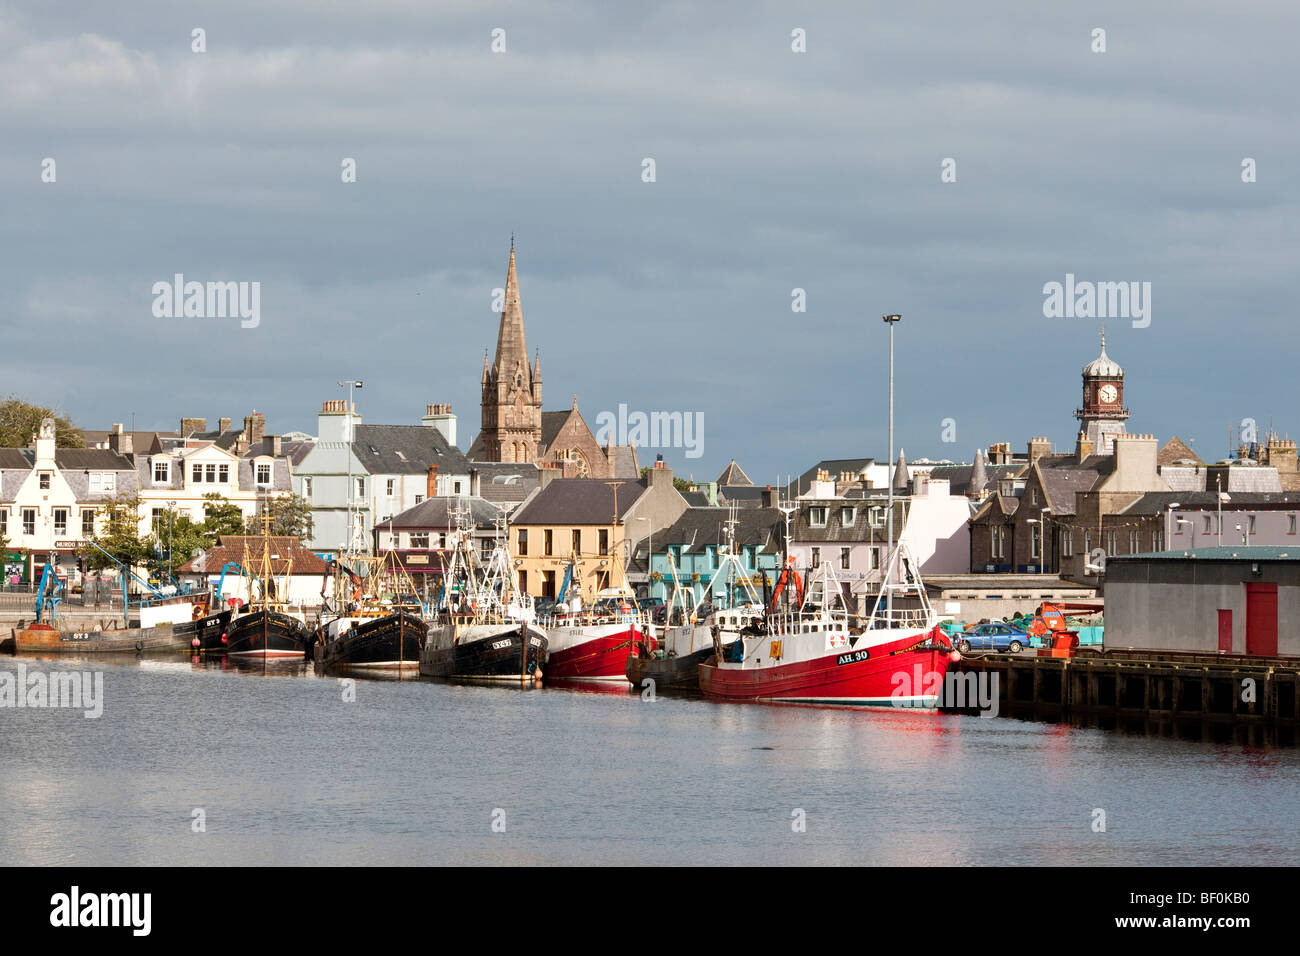 The harbour at Stornoway on the Isle of Lewis, Scotland - Stock Image